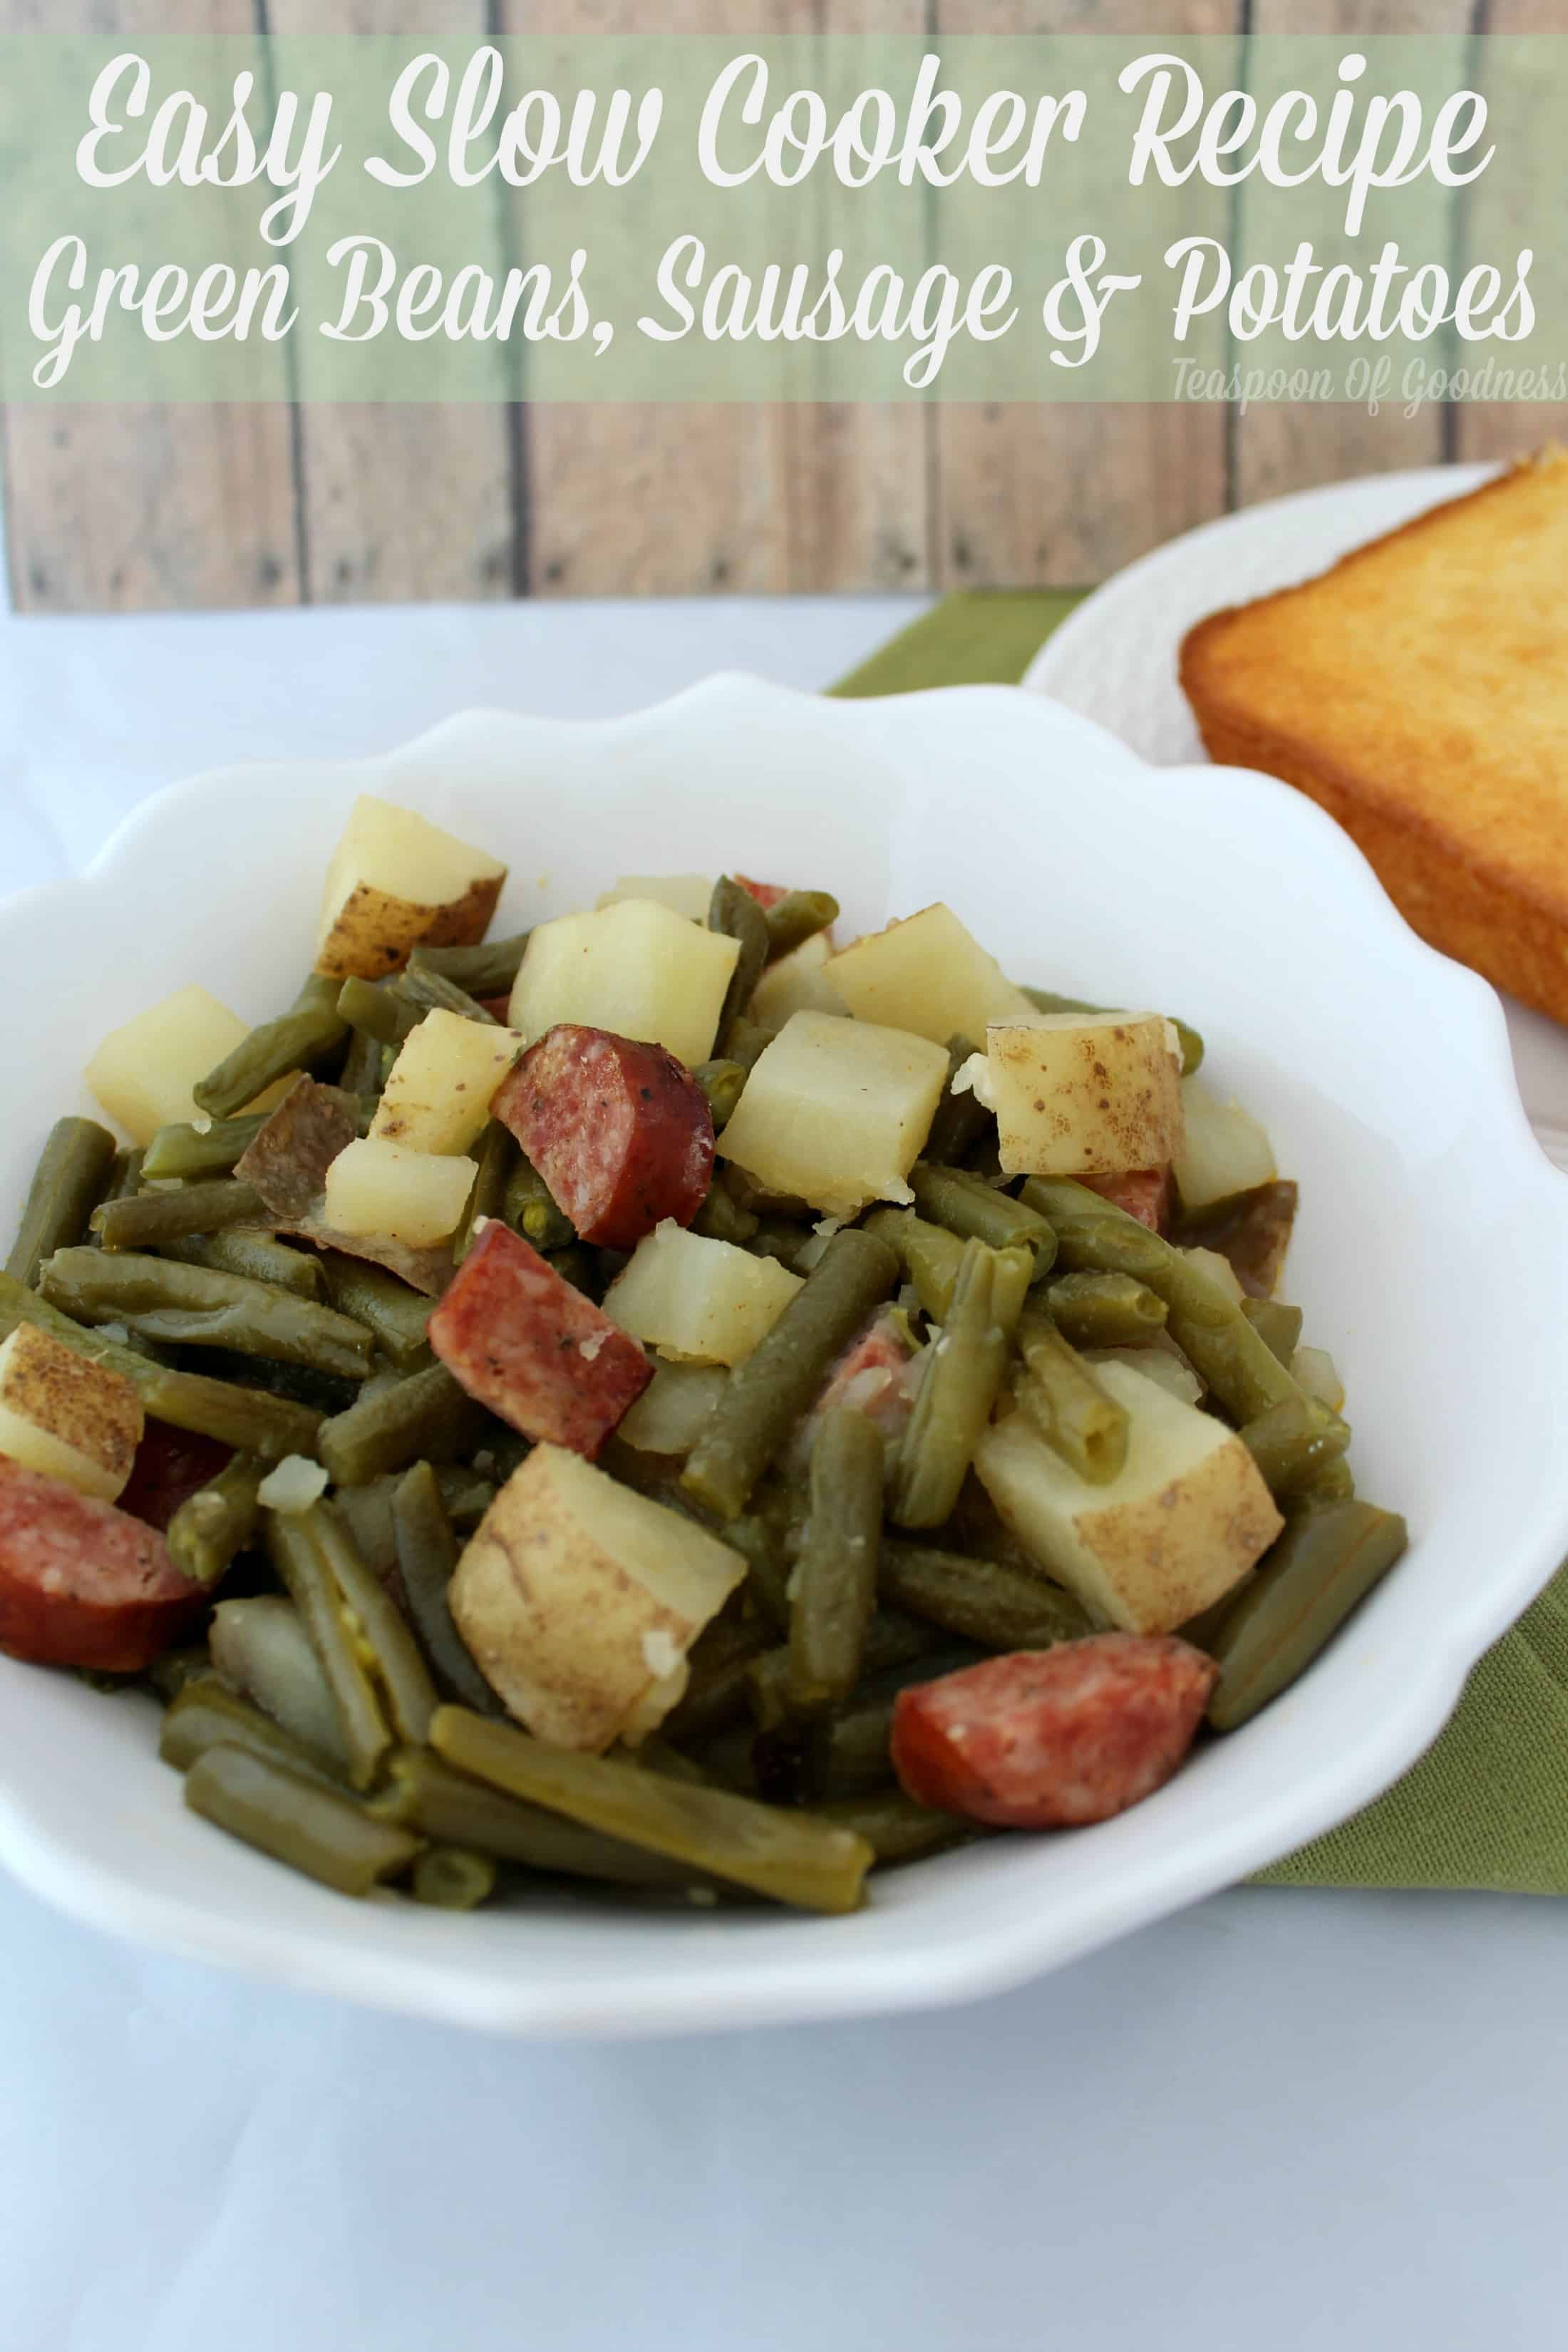 Slow cooker recipe green beans sausage potato dinner easy slow cooker recipe green beans sausage and potatoes forumfinder